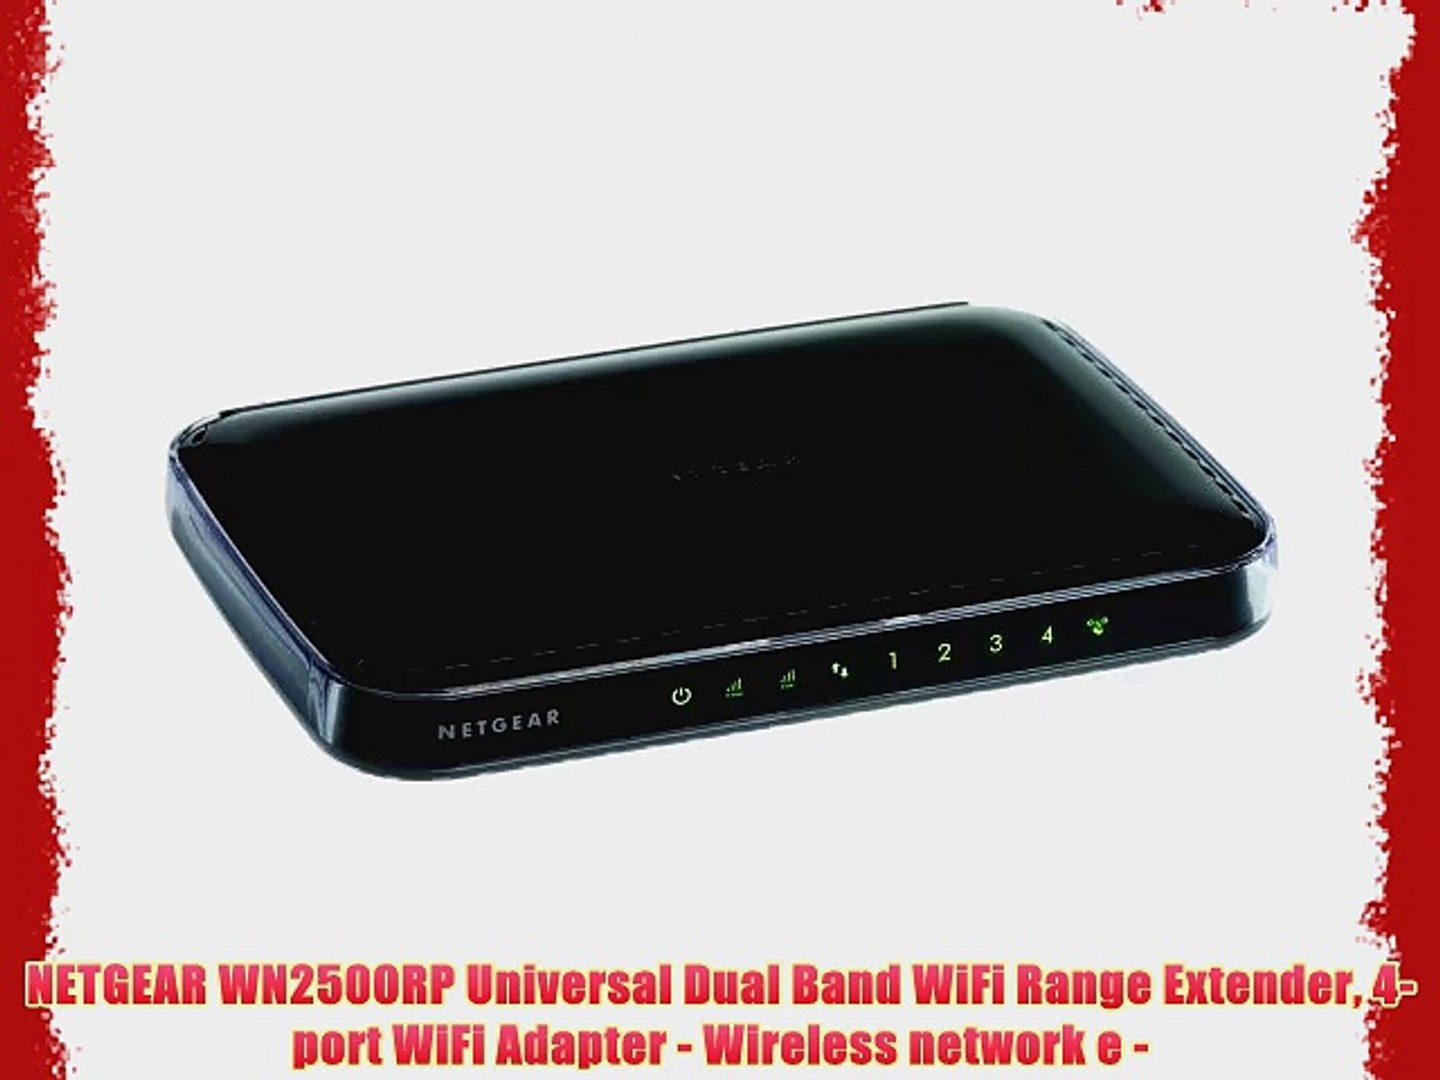 NETGEAR WN2500RP Universal Dual Band WiFi Range Extender 4-port WiFi  Adapter - Wireless network